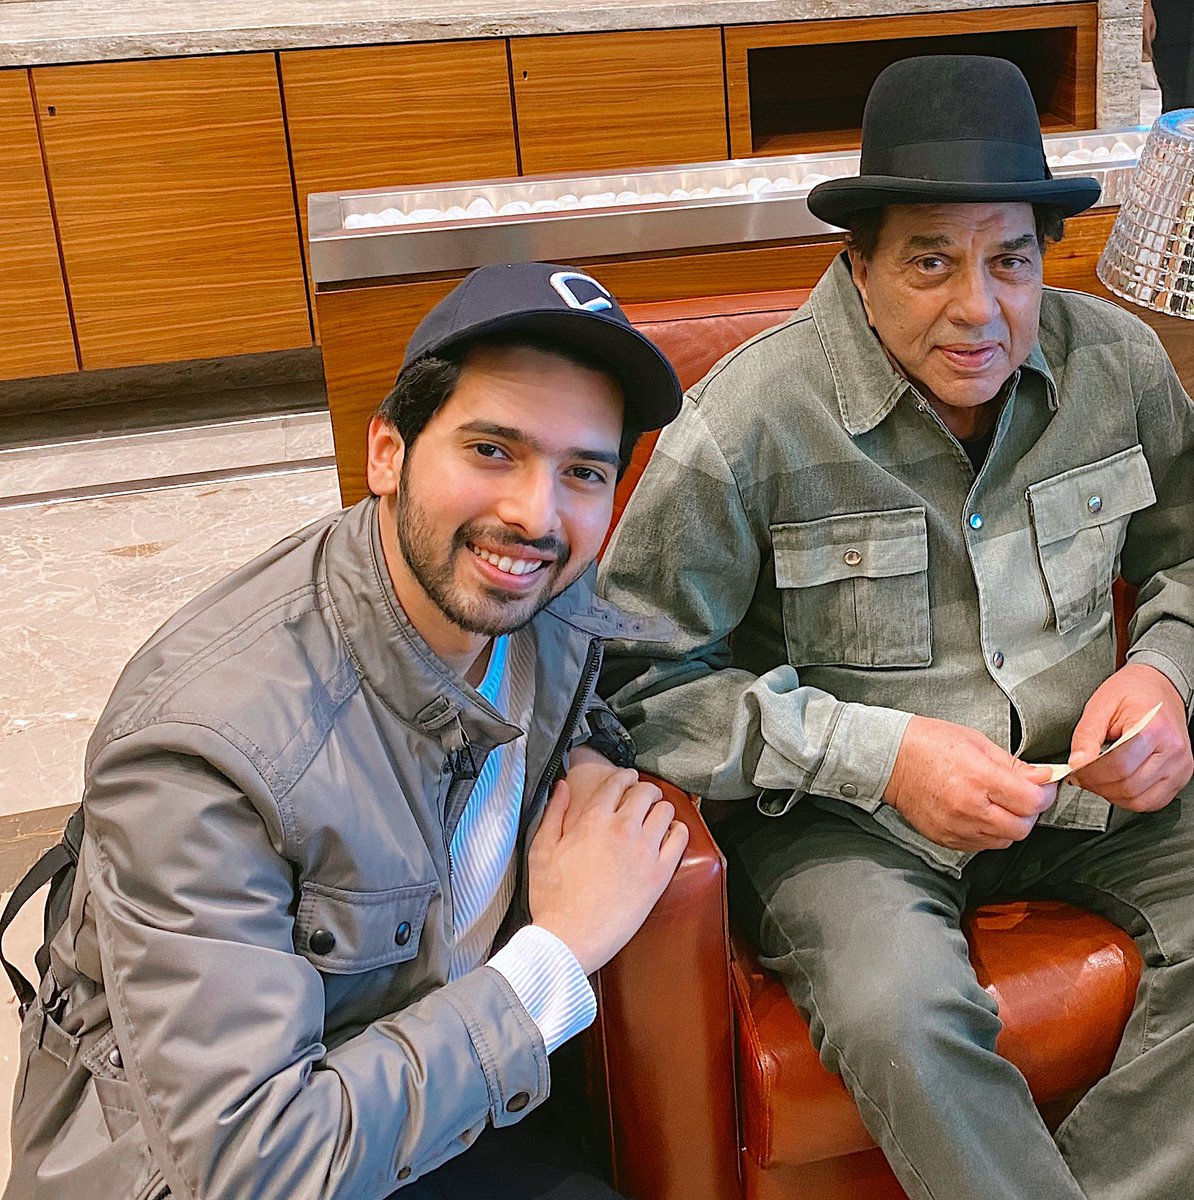 Can't believe I started my morning meeting this absolute LEGEND! @aapkadharam 🙏🏻💯